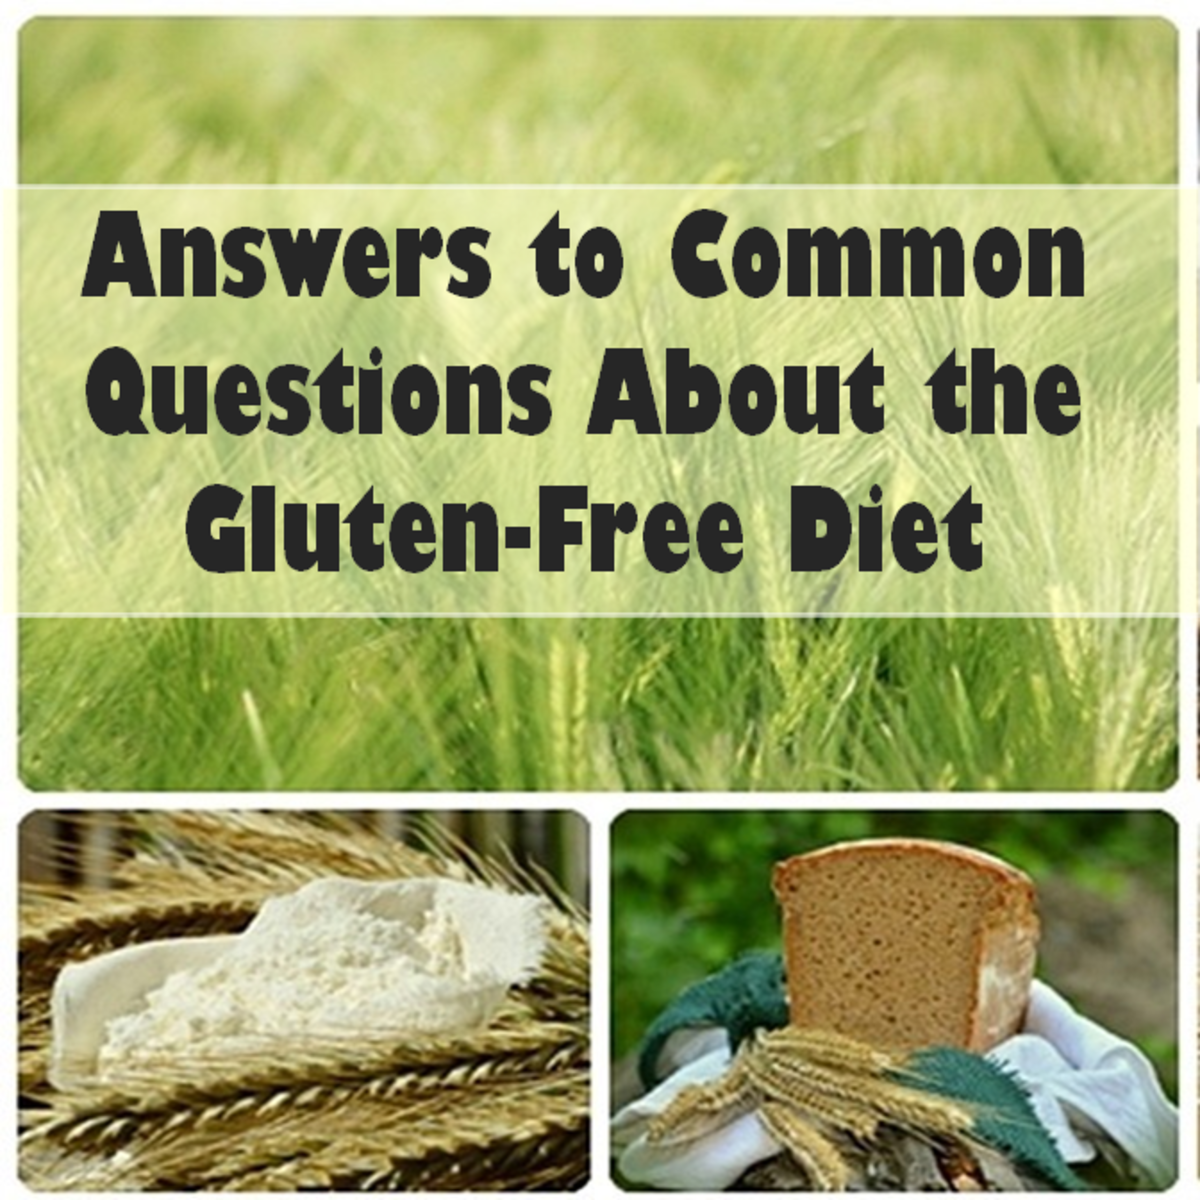 Common Questions Asked About the Gluten-Free Diet